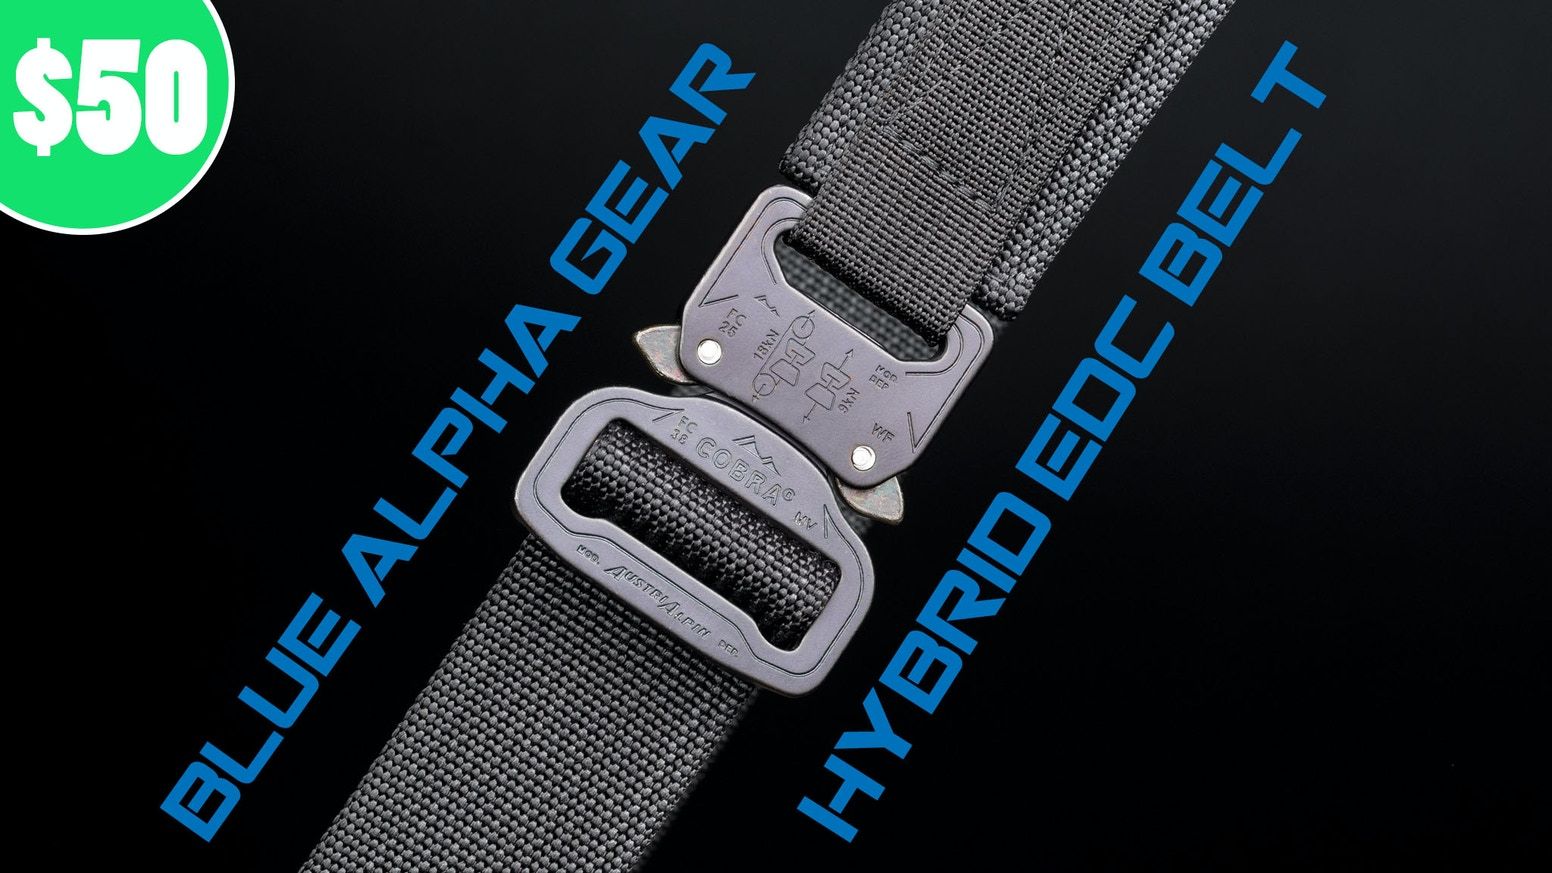 2a3e5fa803f8c Blue Alpha Gear Hybrid EDC Belt. The Hybrid EDC is a tough yet comfortable  belt featuring a super strong buckle that fits